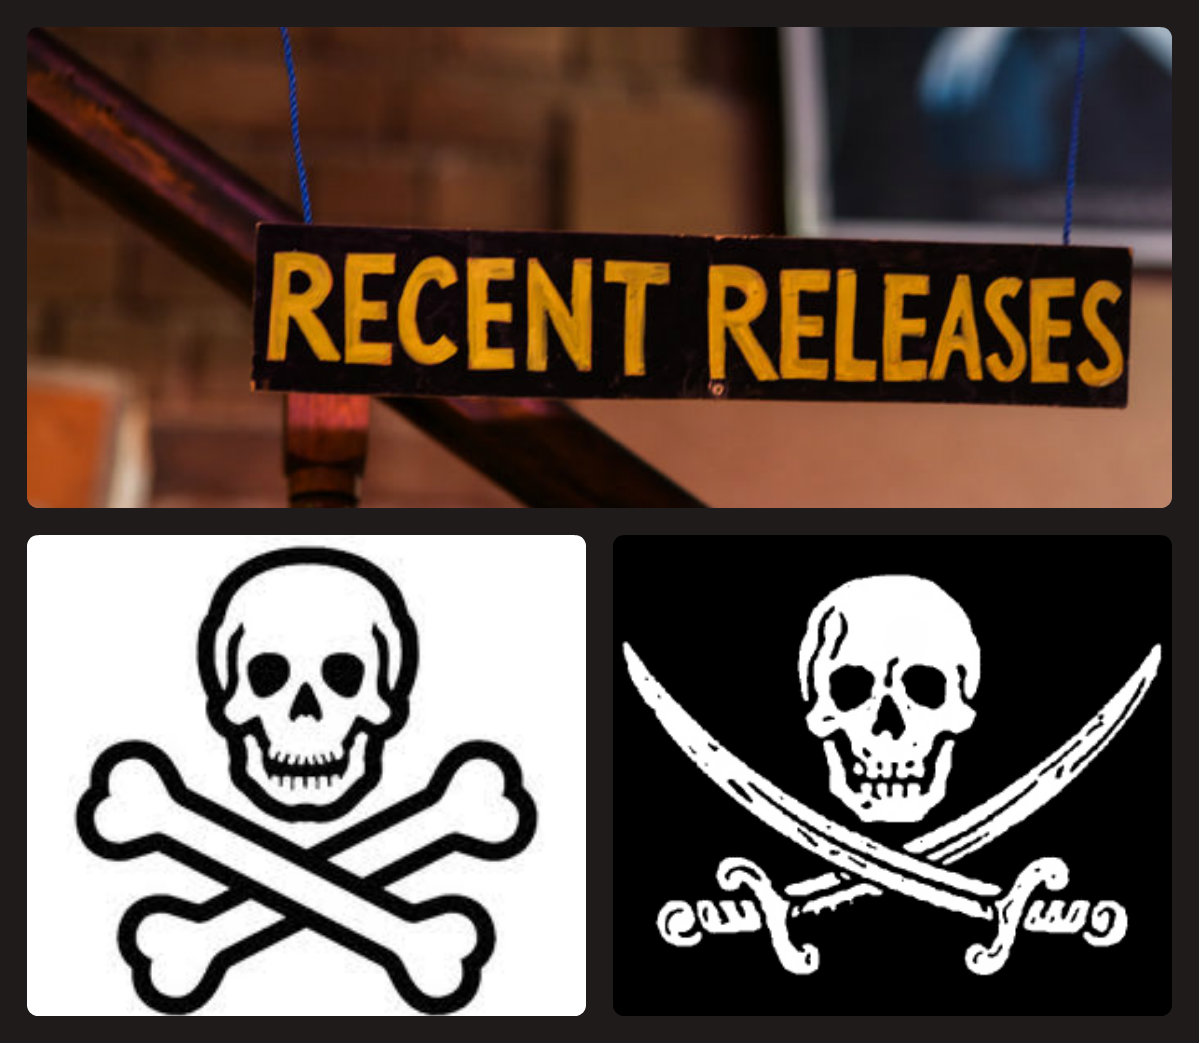 Piracy Image Podcast 1